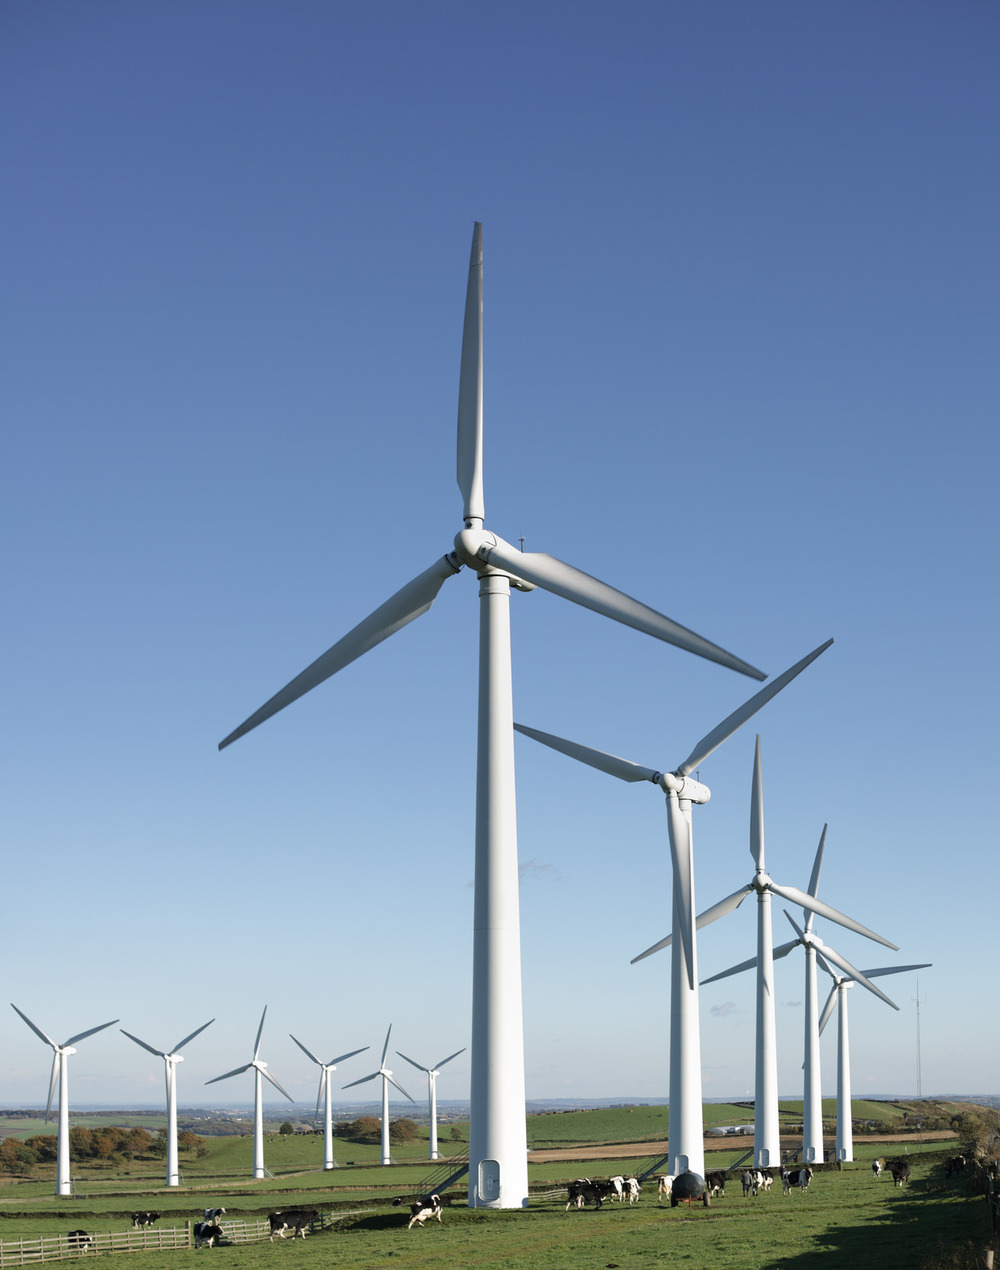 photodune-3589406-wind-turbines-in-windfarm-m.jpg